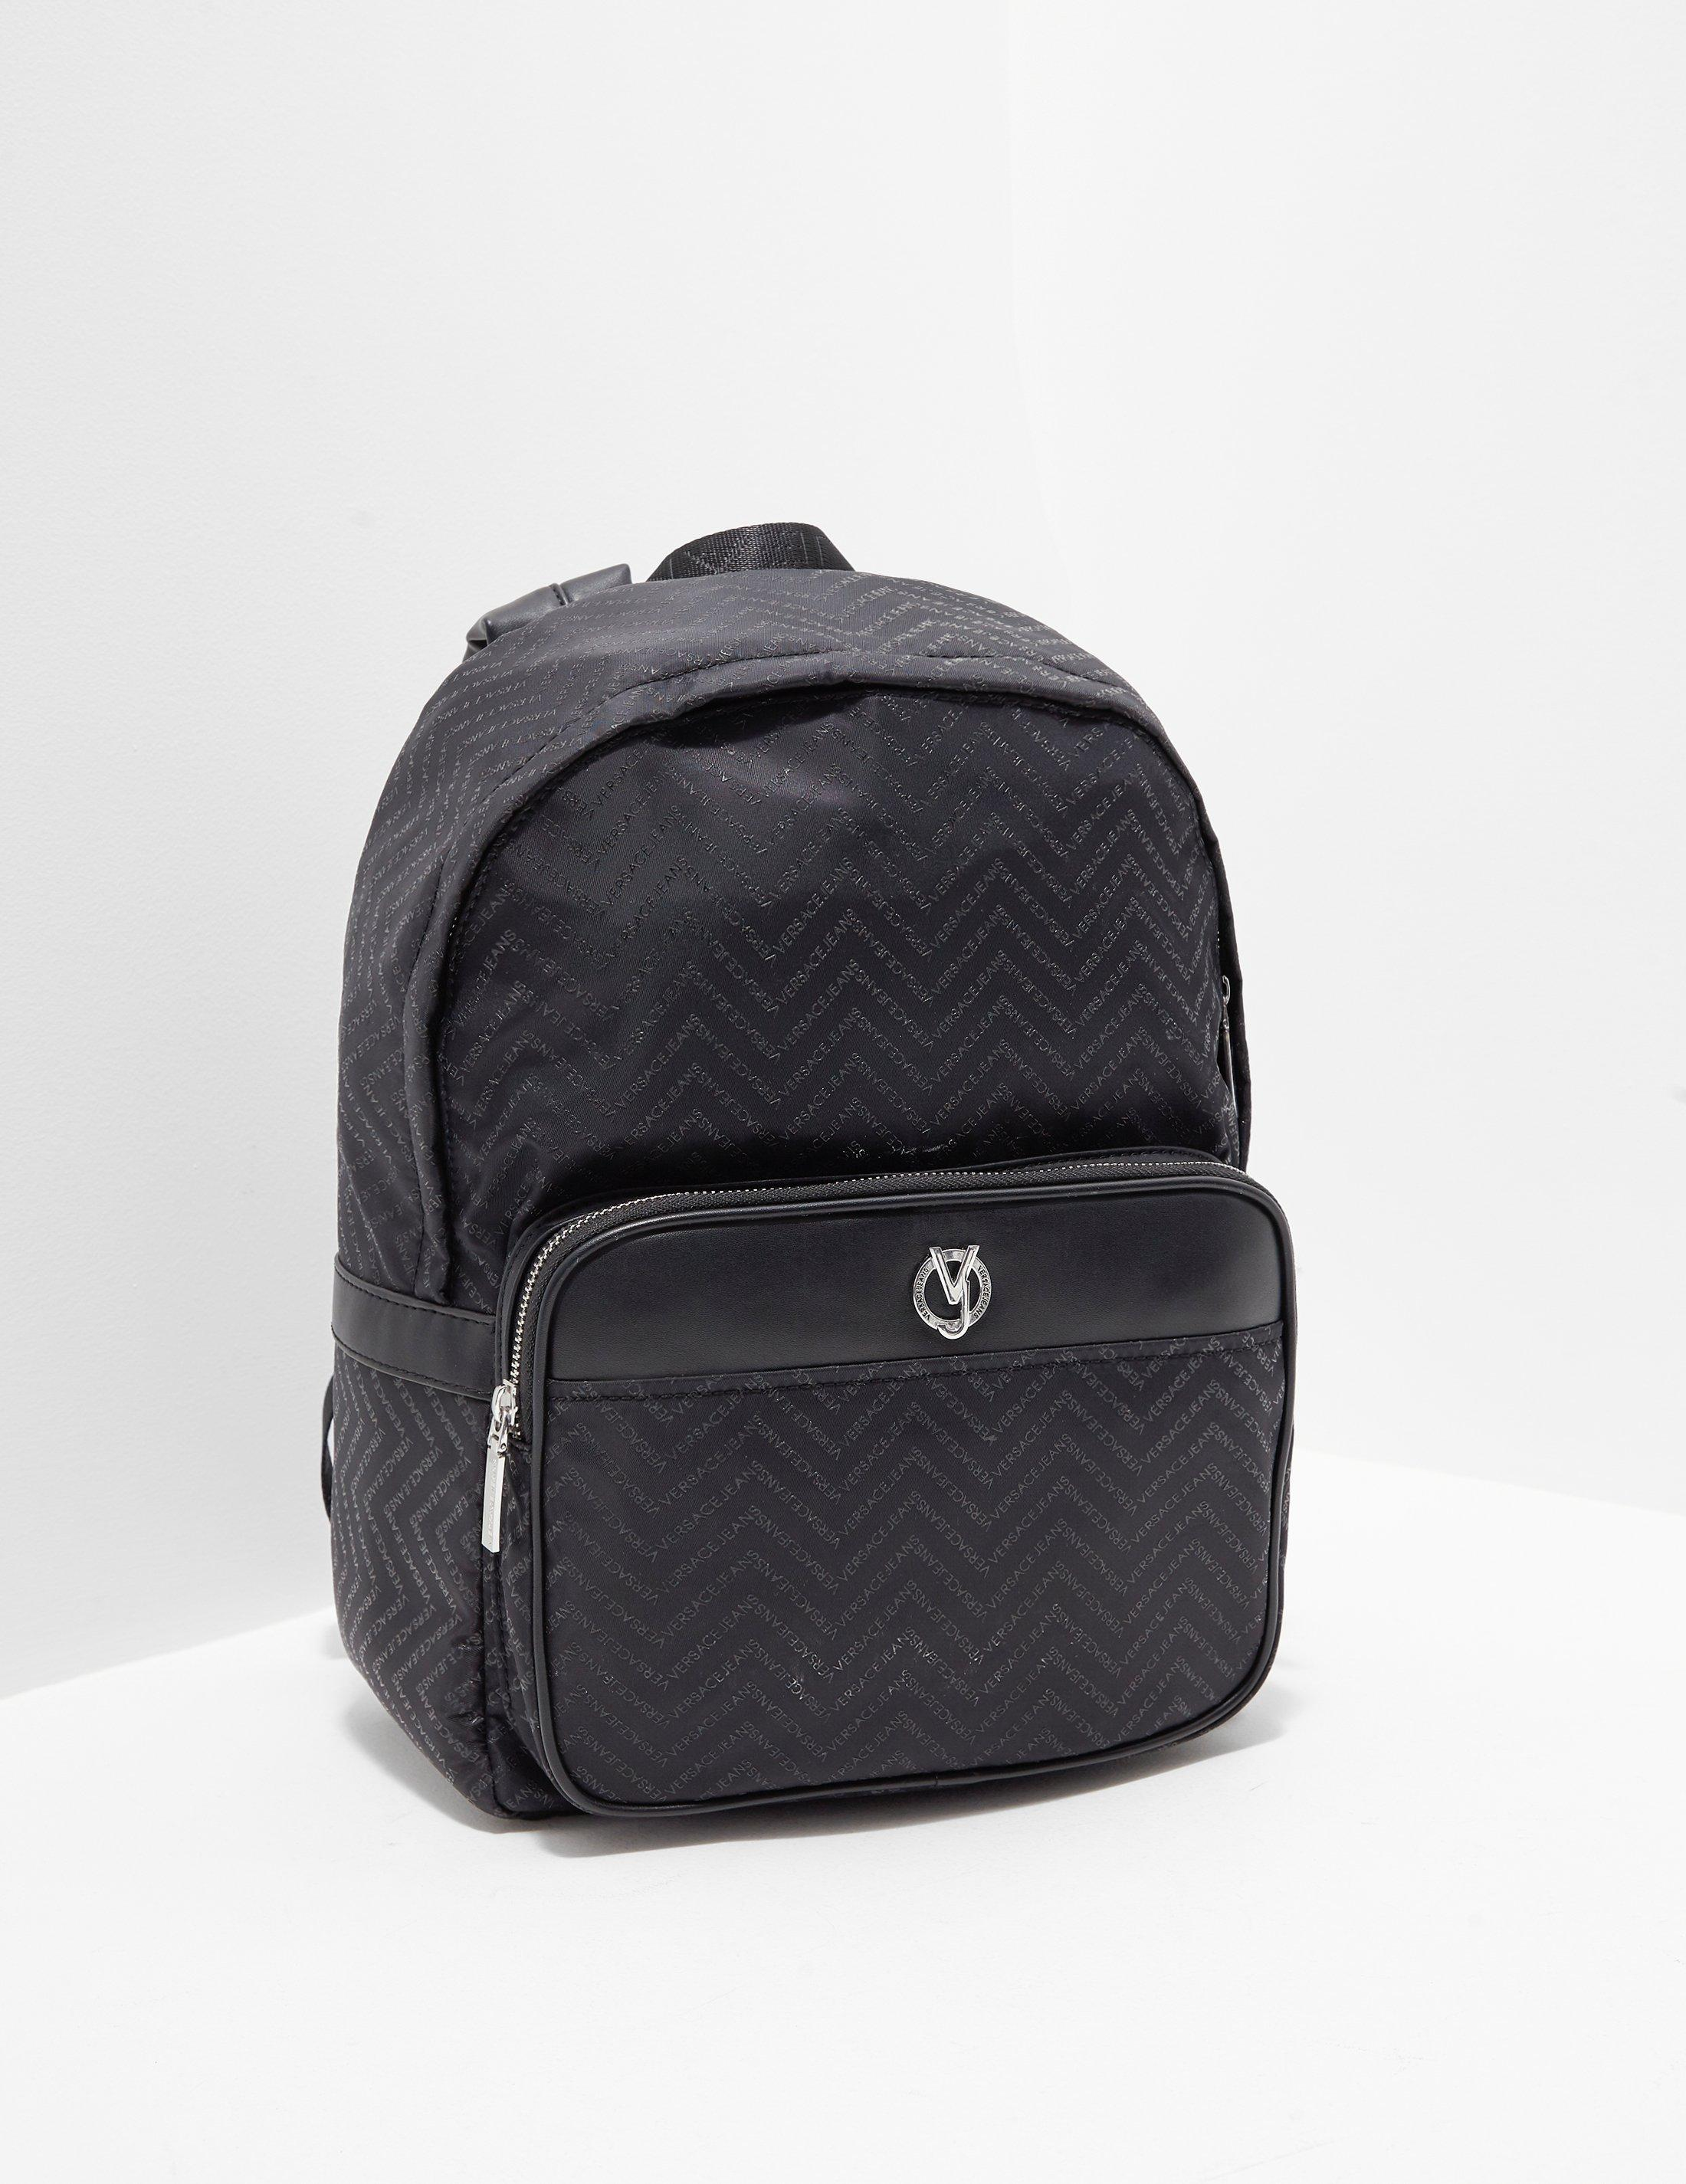 9675f41b83 Versace Jeans Linea Chevron Backpack Black in Black for Men - Save ...